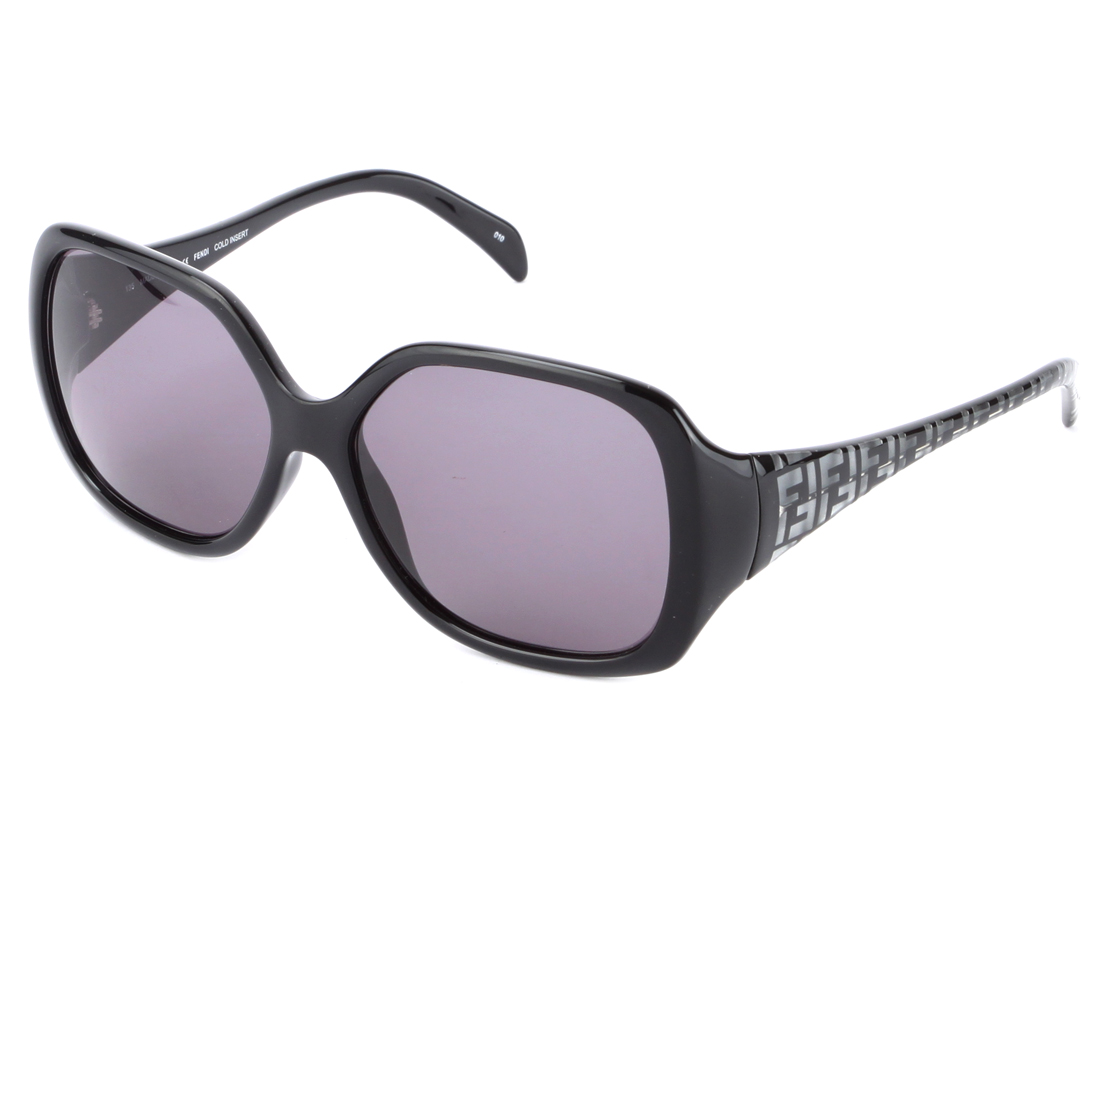 fendi cat eye sunglasses sale  fendi black fs 5145 sunglasses